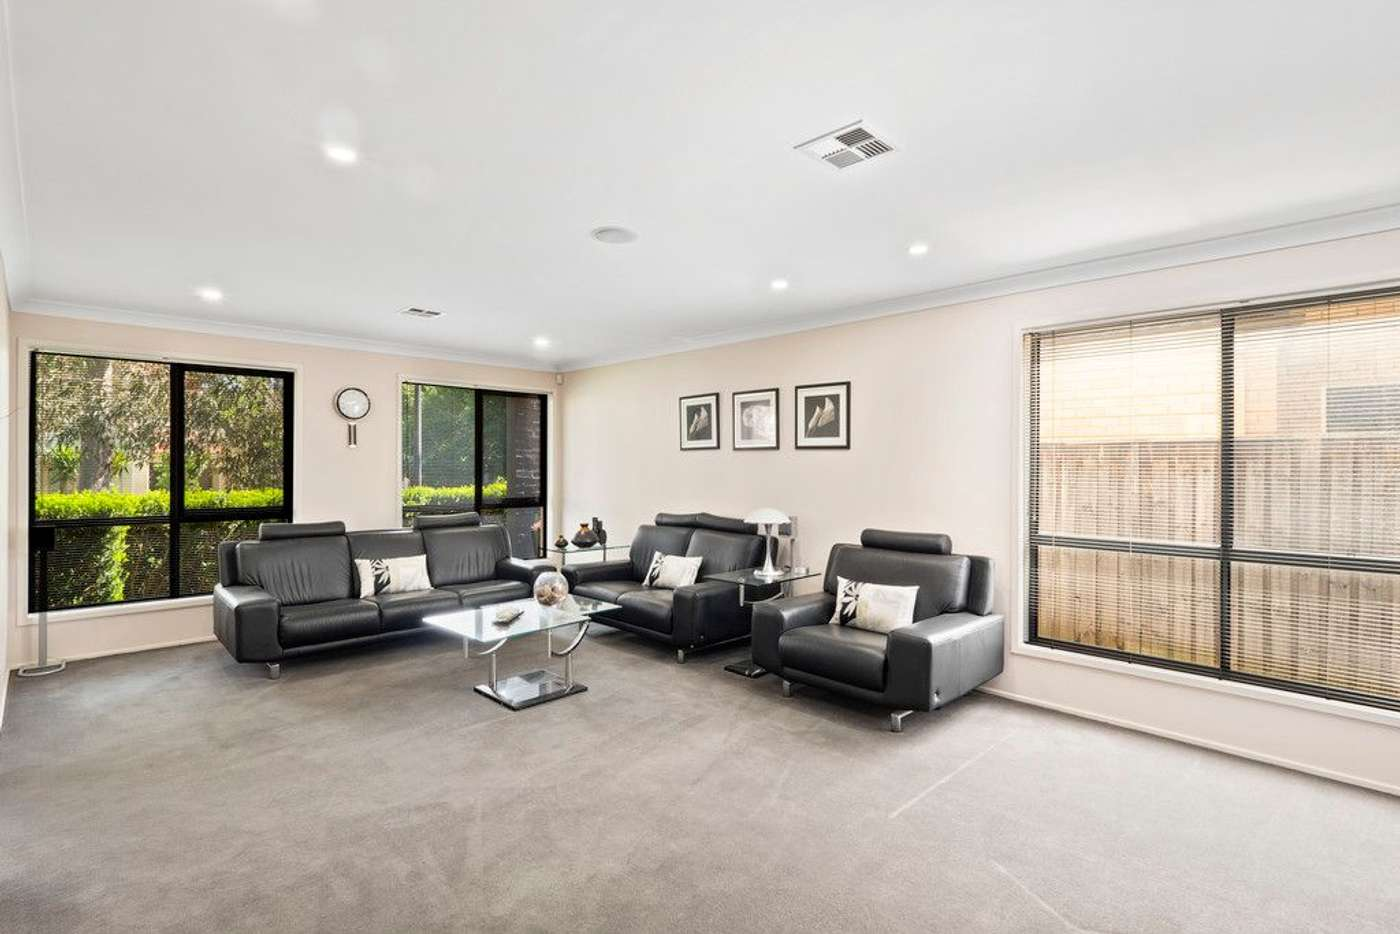 Fifth view of Homely house listing, 17 Somerset Street, Stanhope Gardens NSW 2768